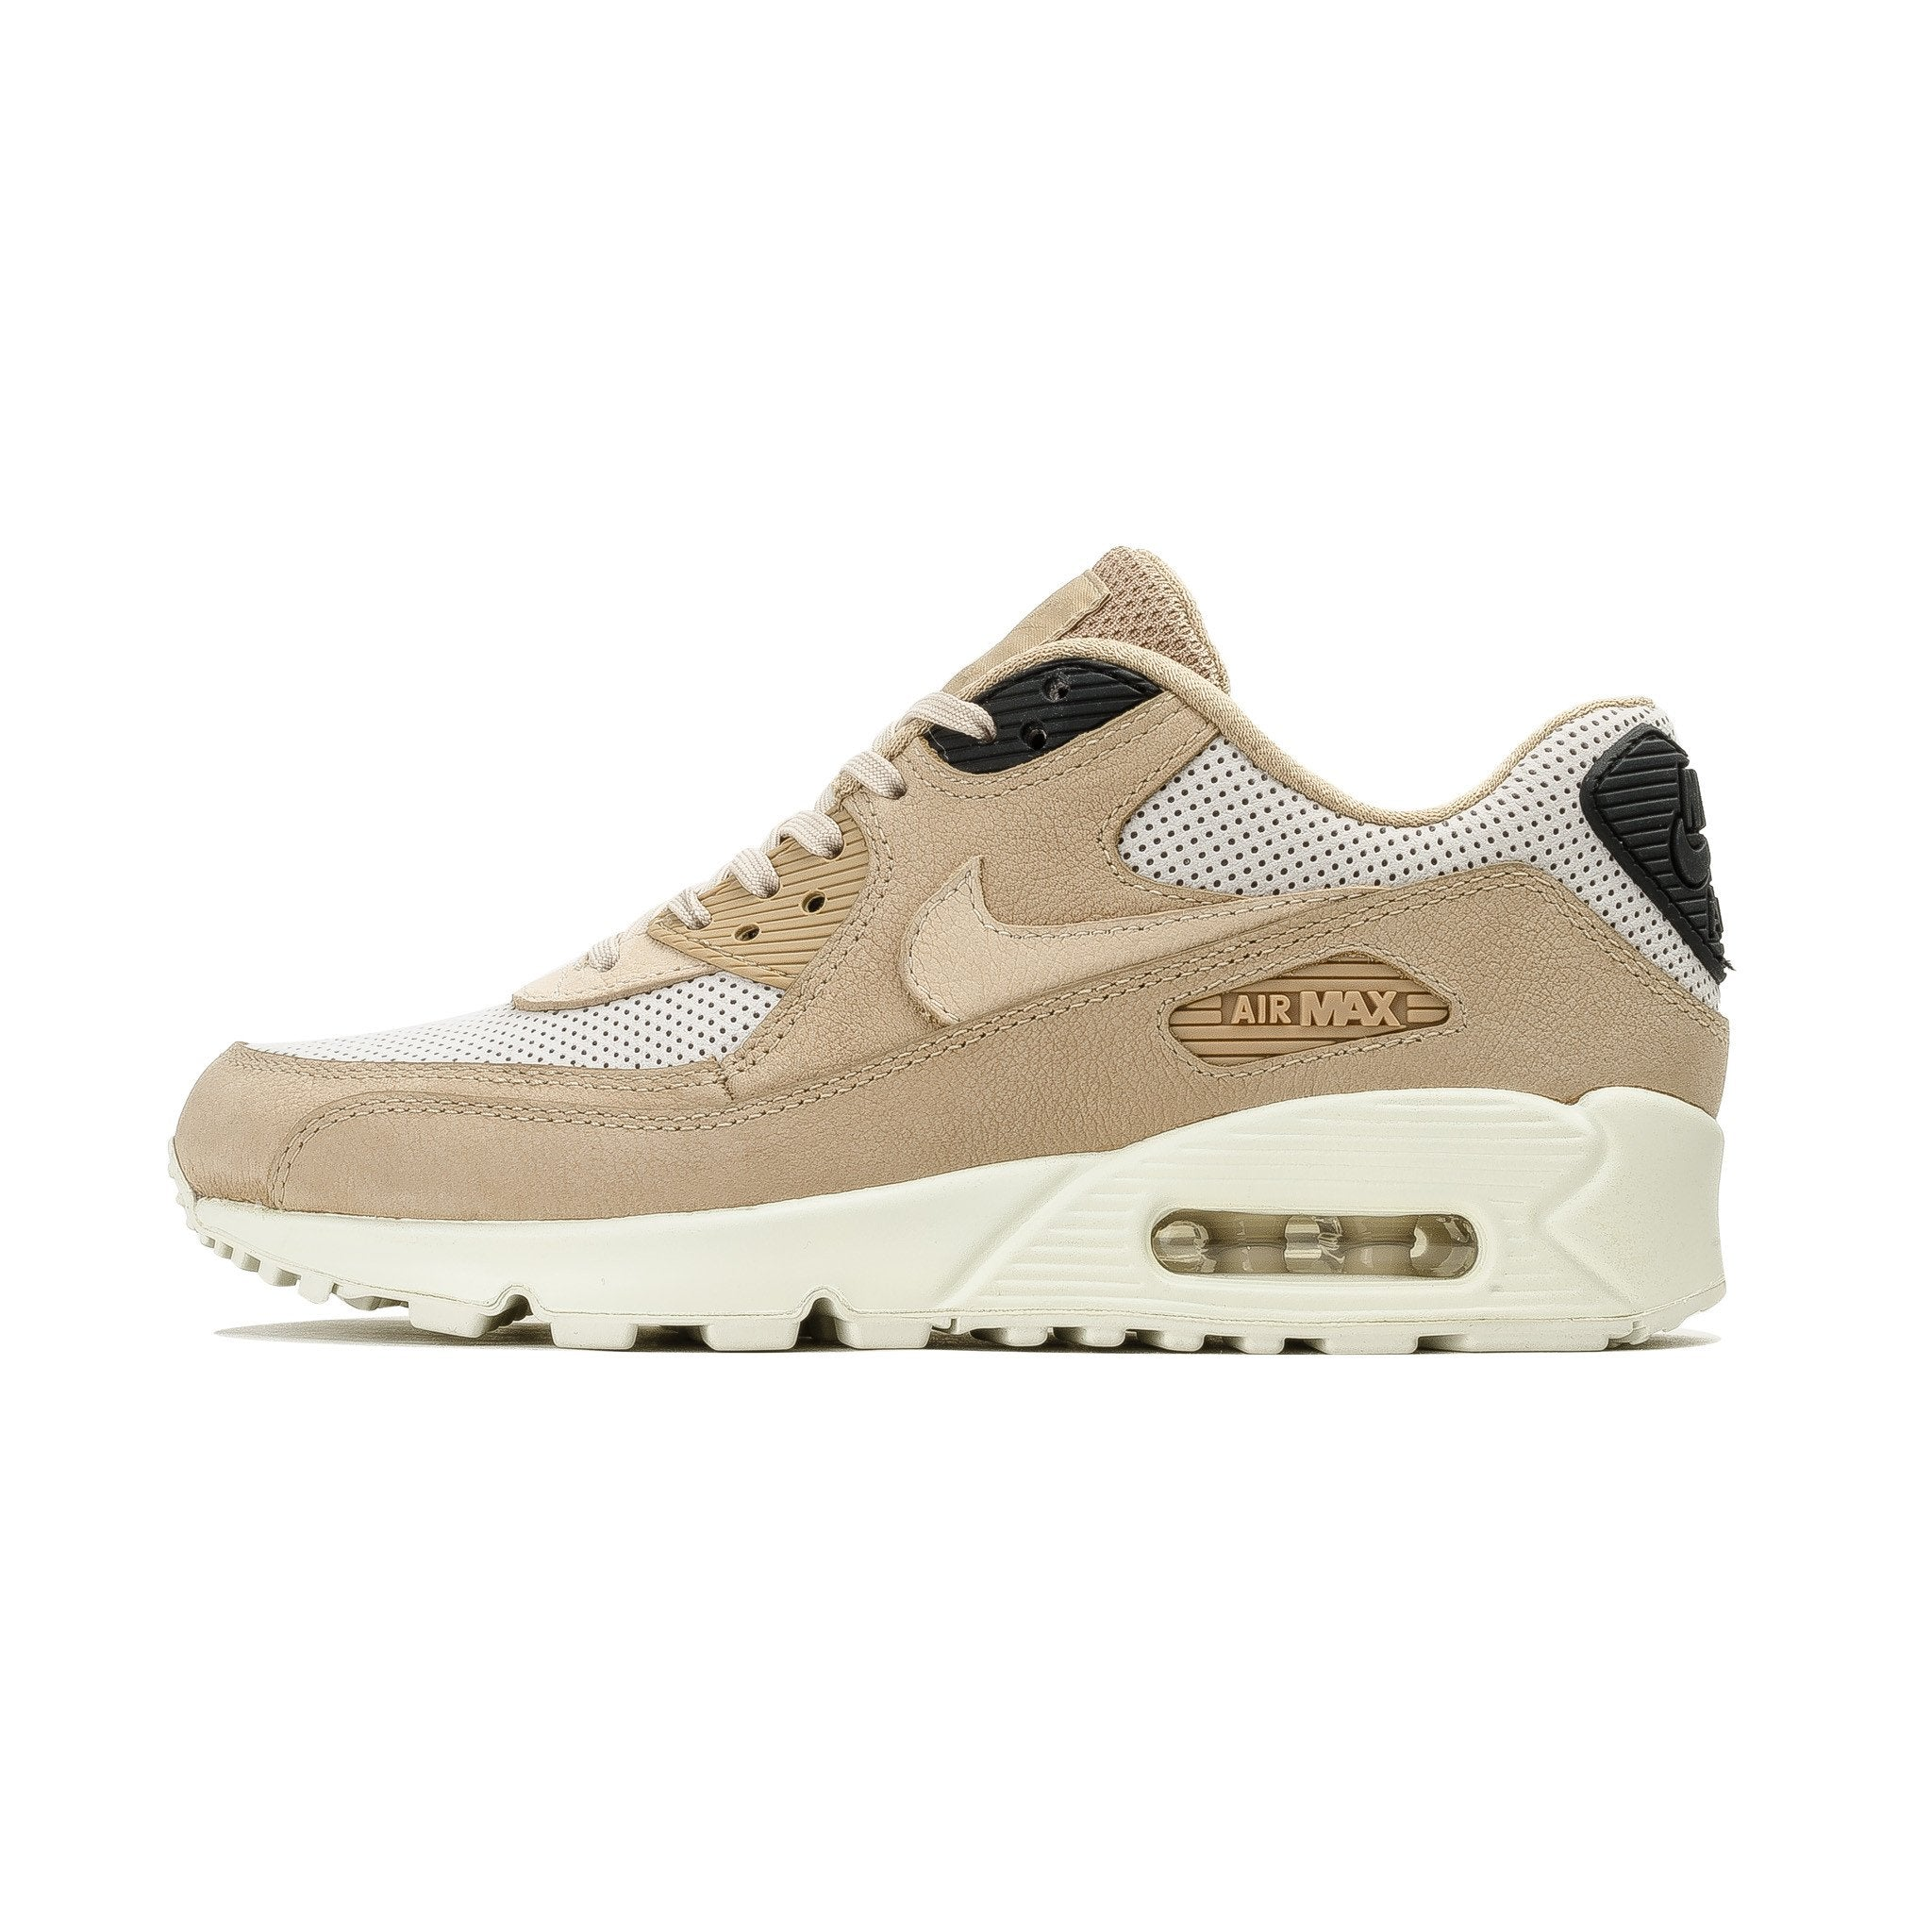 W Air Max 90 Pinnacle 839612-200 Mushroom